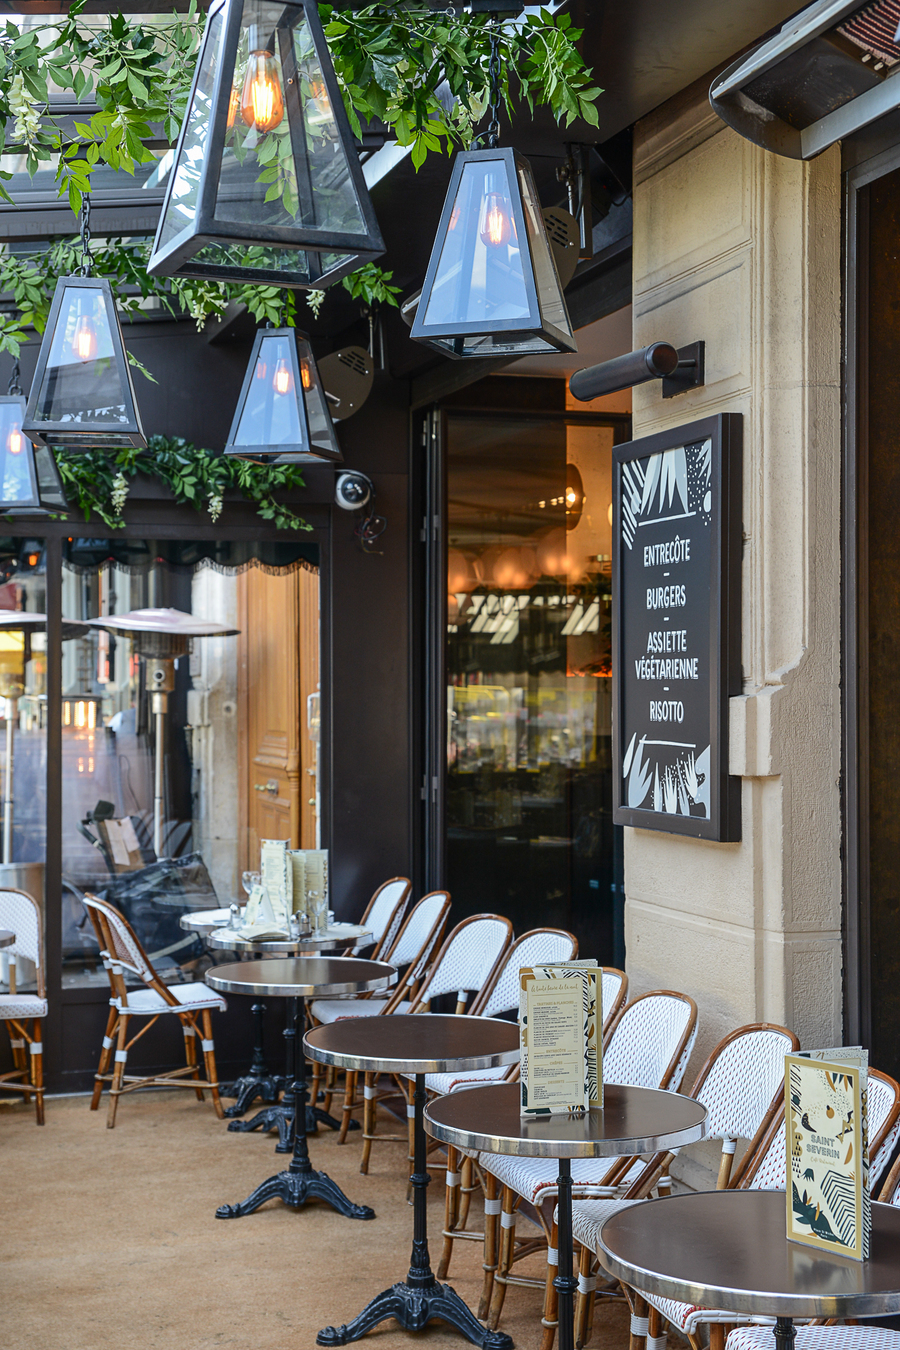 CREDIT-ANTHONY-COTTAREL-BRASSERIE-SAINT-SEVERIN-PARIS-DECORATION-GRAPHISME-STUDIO-EMMA-ROUX-MOBILIER-TERRASSE-CUIR-CAFE-BAR-TERRASSE